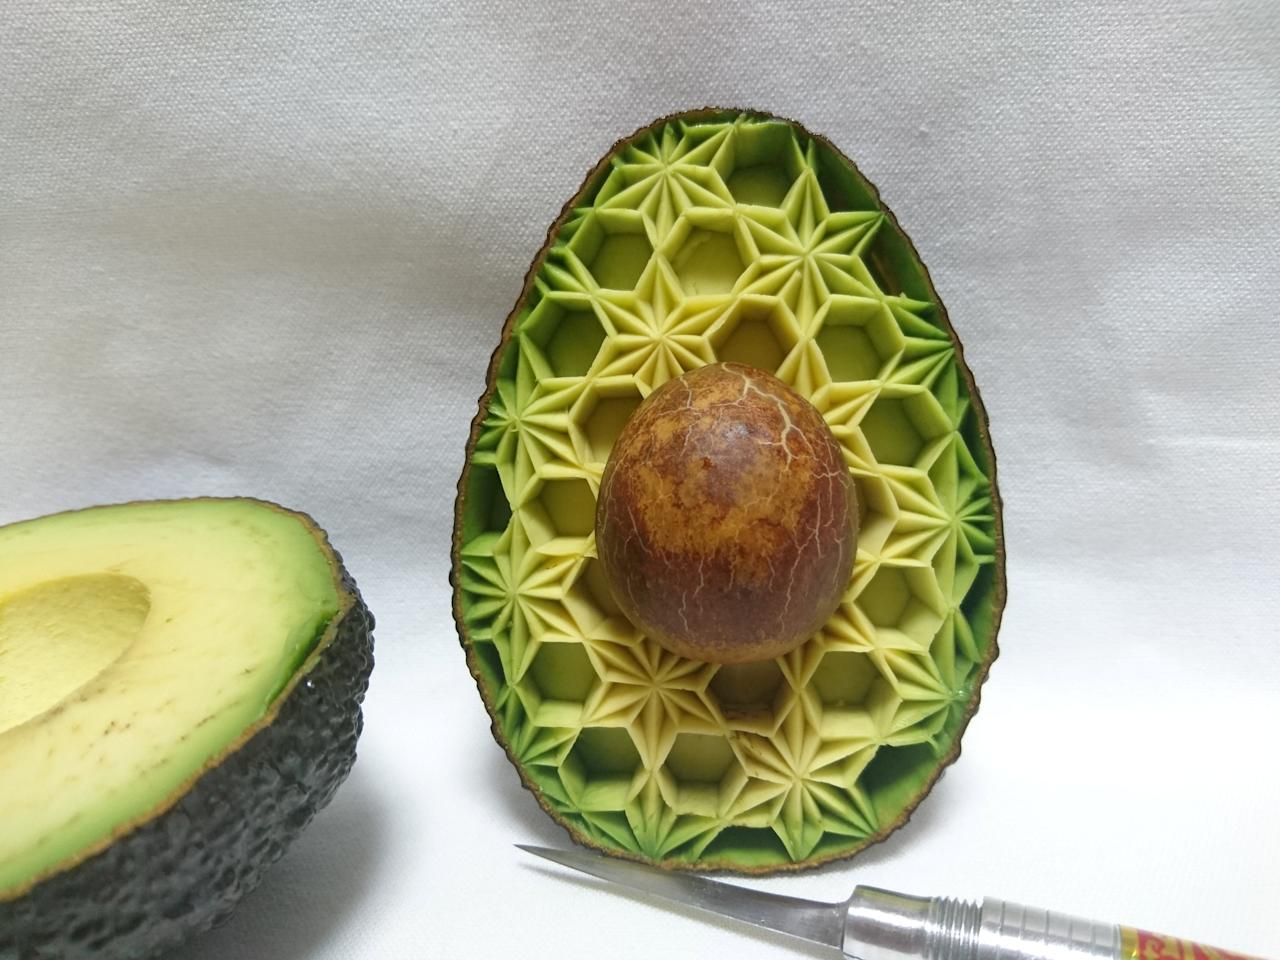 <p>This avocado has been transformed into a honeycomb inspired design. (SWNS) </p>